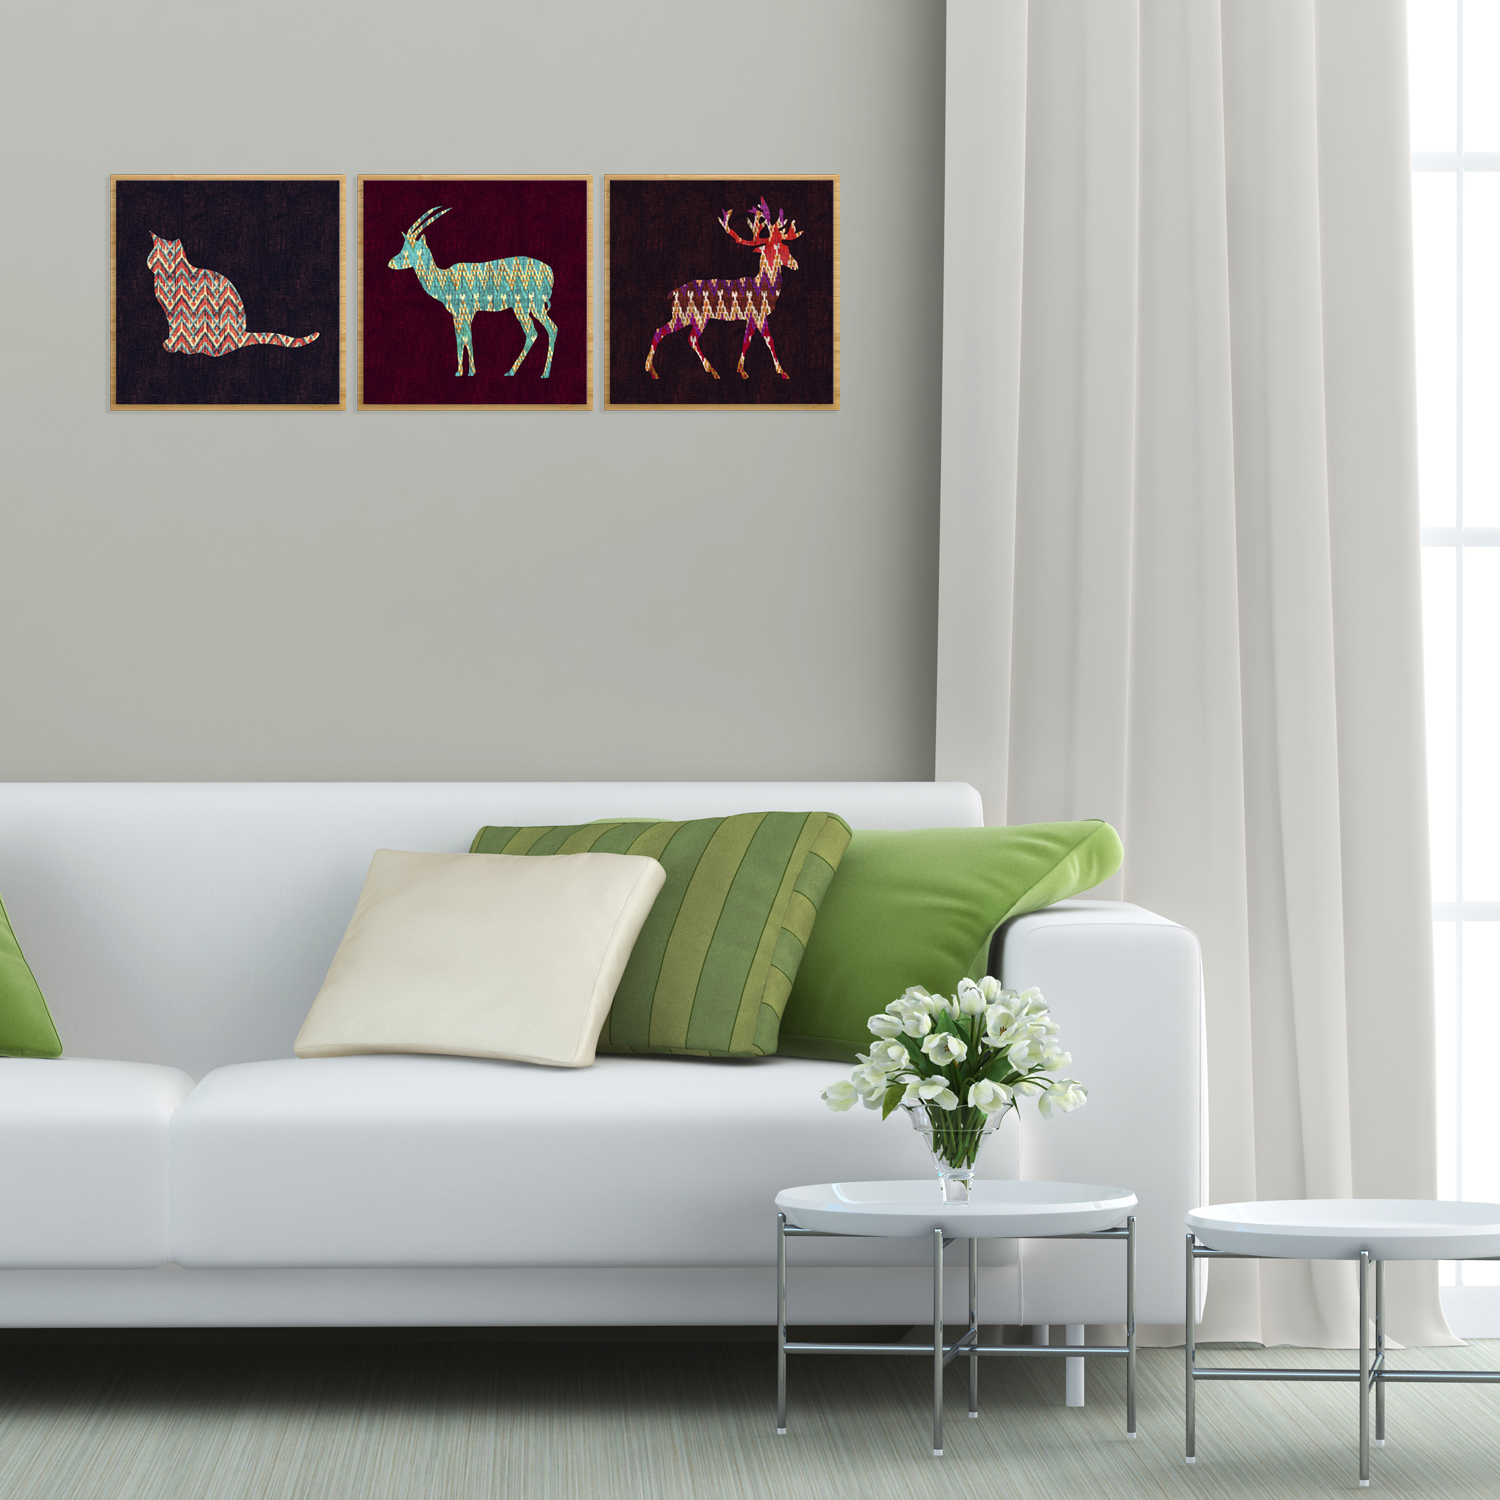 22Types Cartoon Animal Canvas Painting Art Print Pictures Home Room Wall Decor